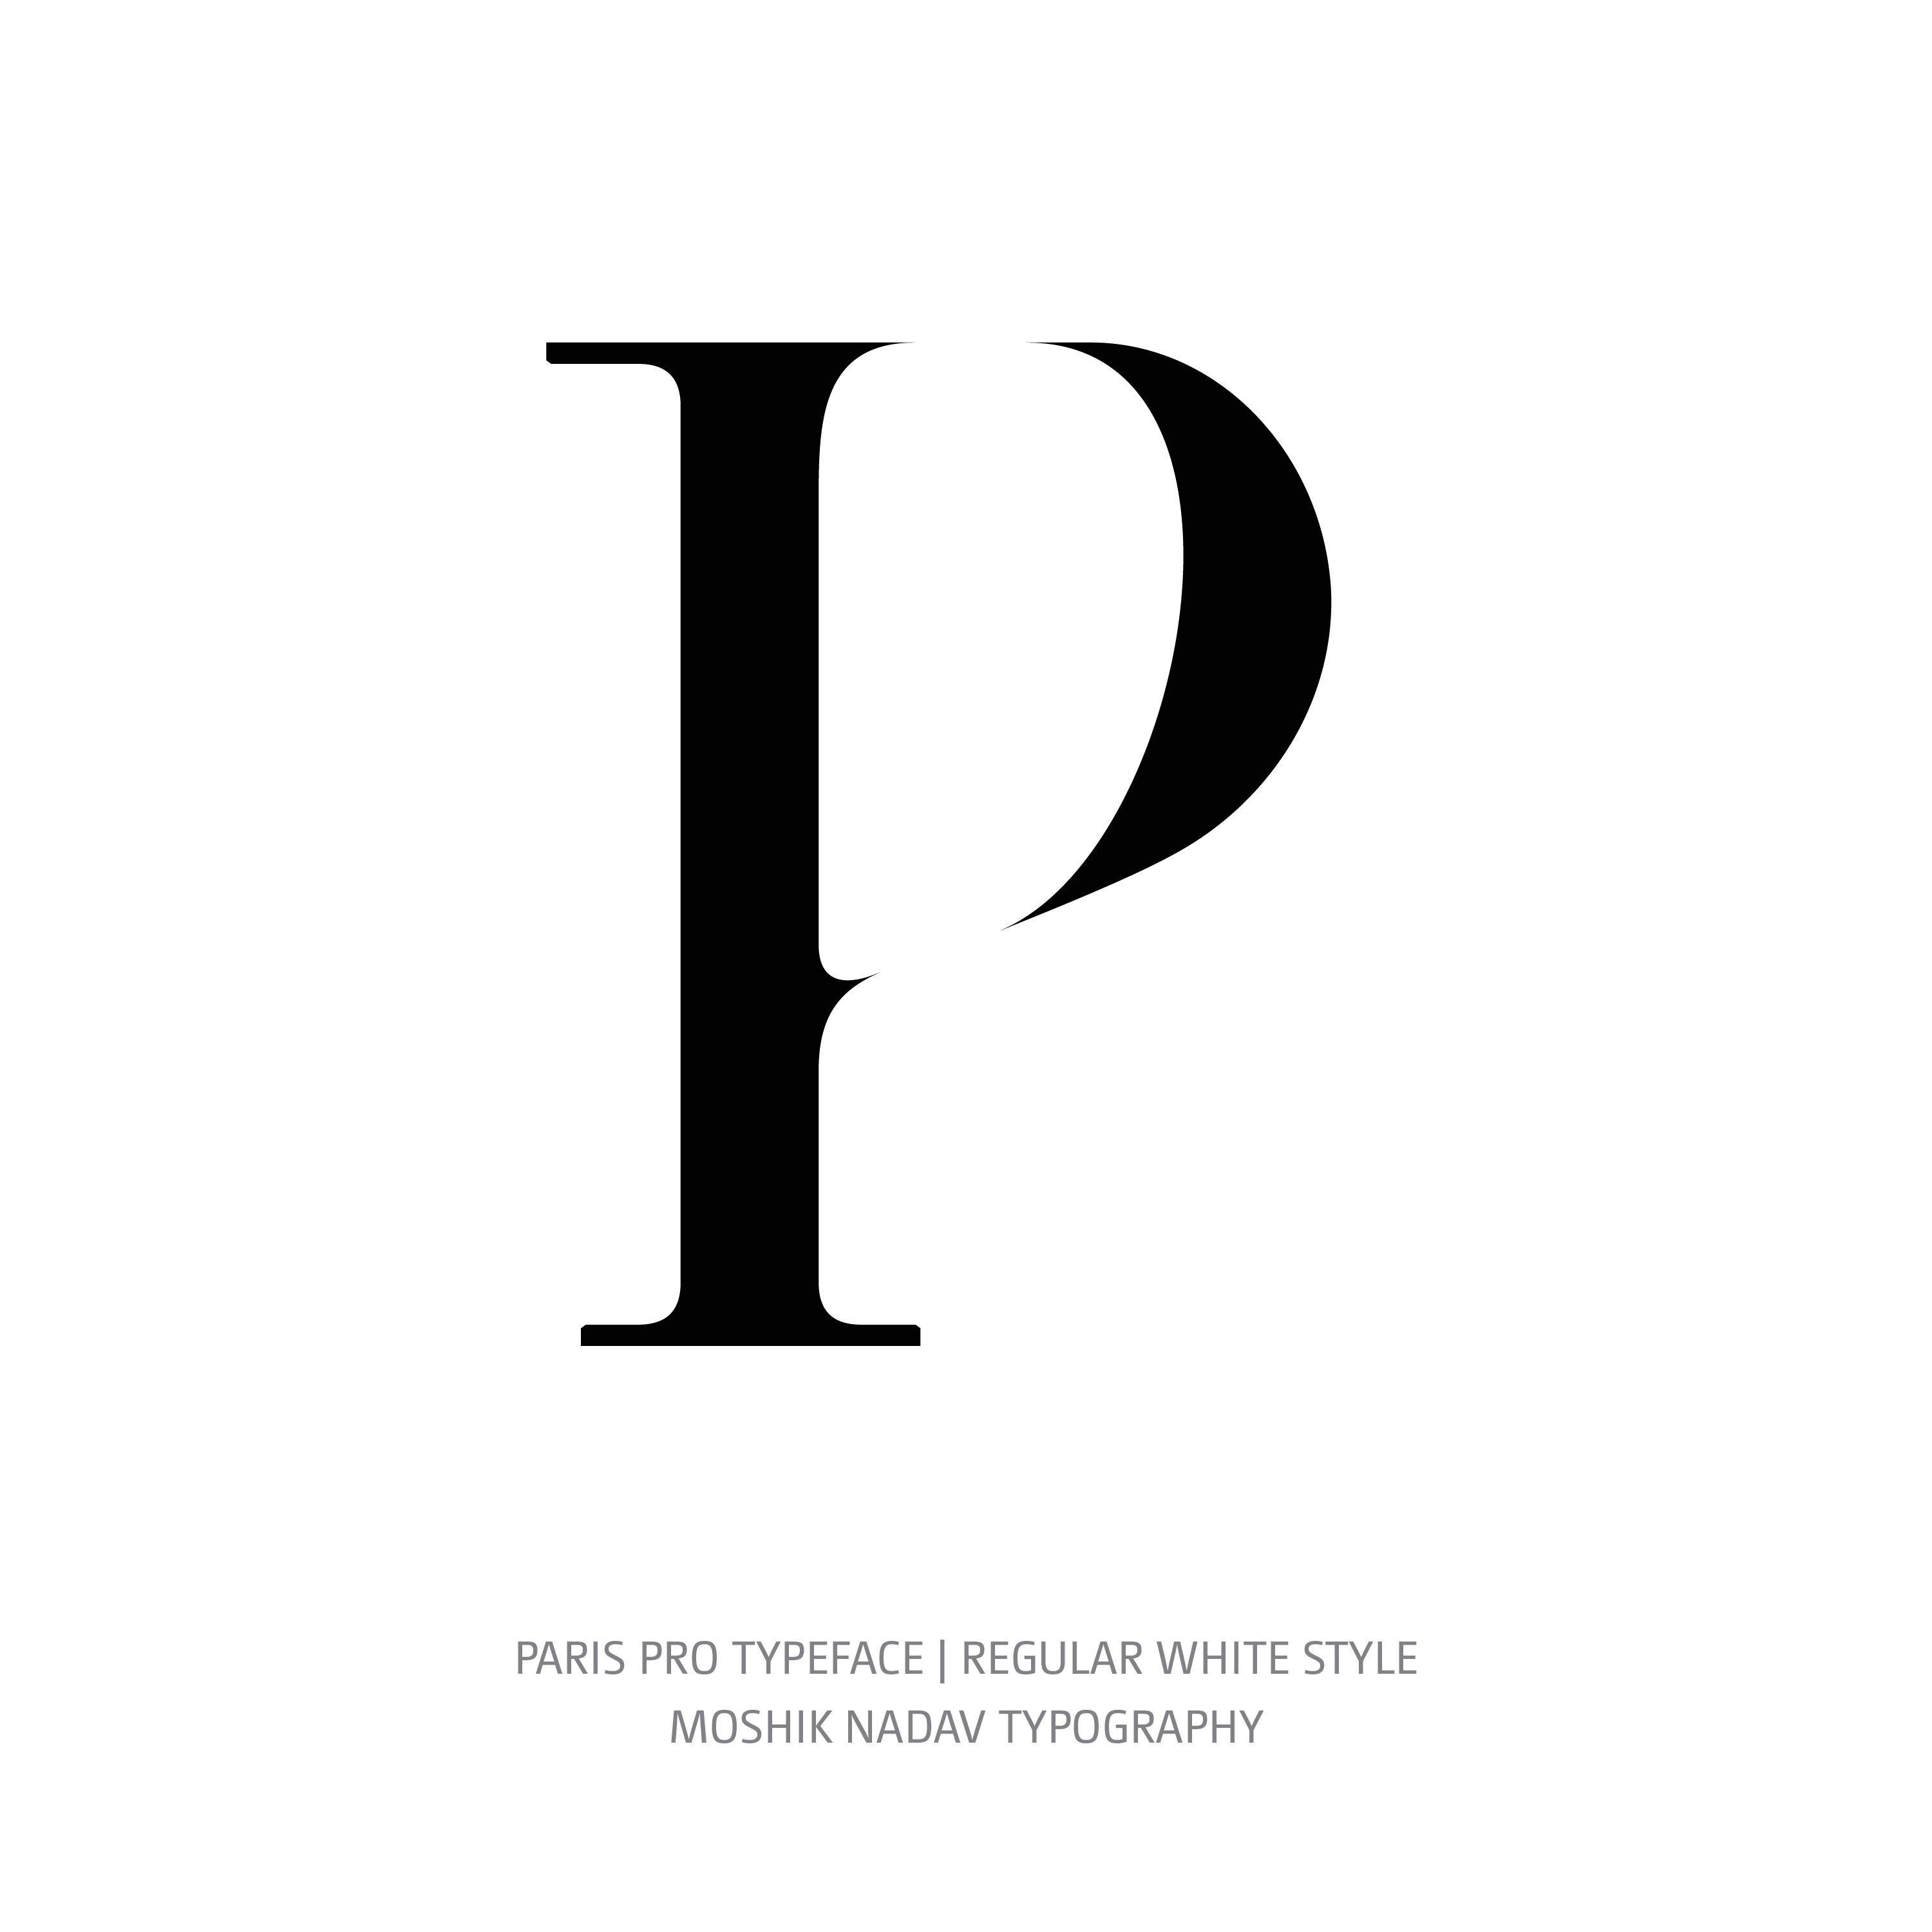 Paris Pro Typeface Regular White P